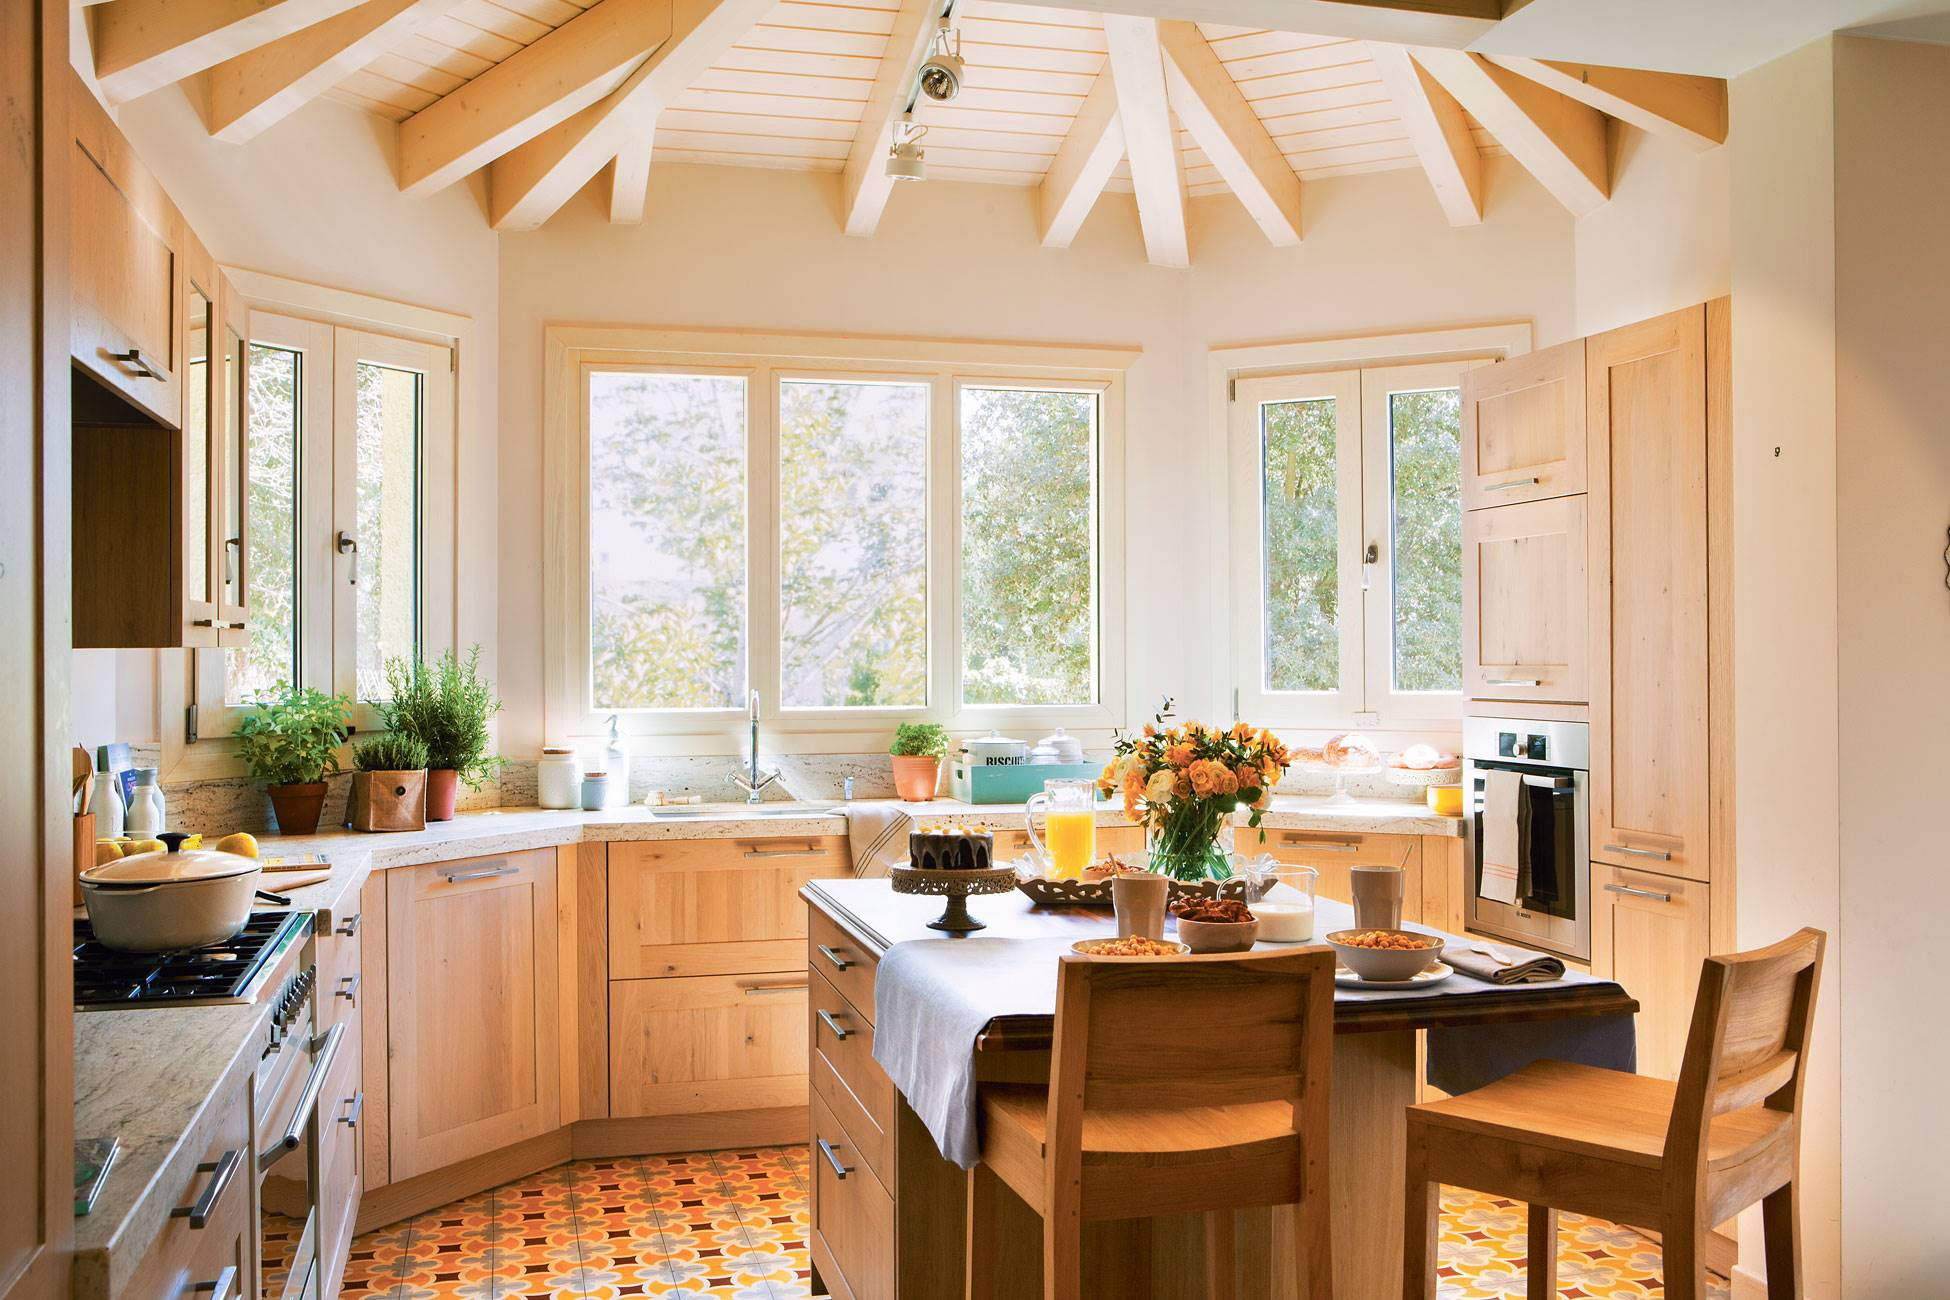 kitchen-hydraulic-floor-and-wooden-furniture-and-ceiling-beams 389990. Wood as the protagonist